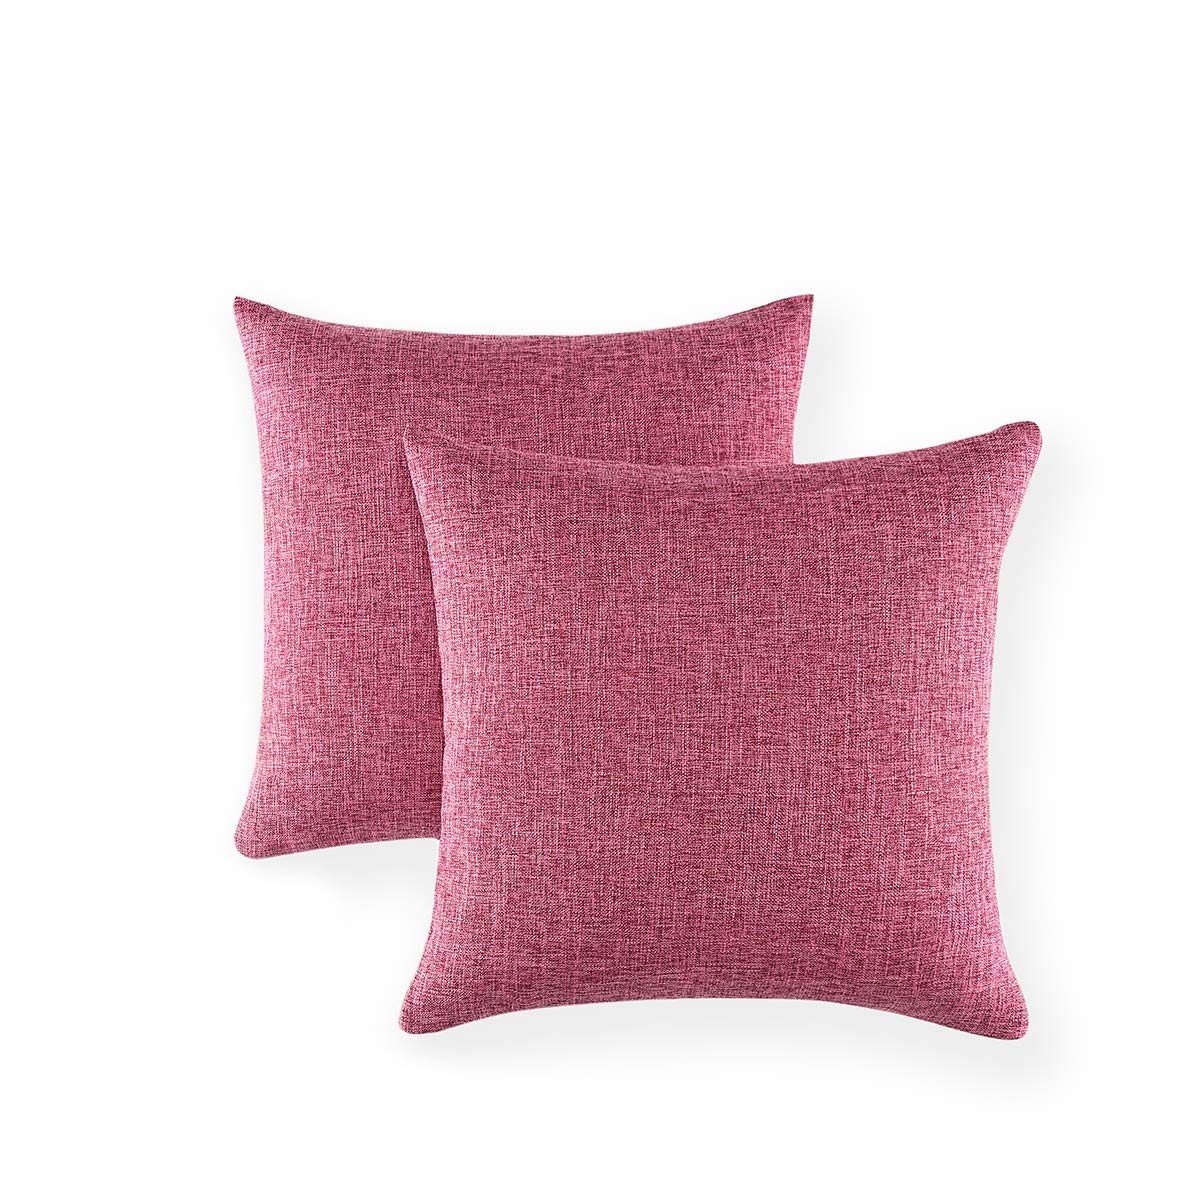 Xinrjojo Solid Color Cotton-Linen Decorative Pillow Covers Accent Square Throw Pillow Cases, 18x18 Inches Cushion Covers Euro Sham for Sofa Couch Bed&Car, Pack of 2- Rose Red